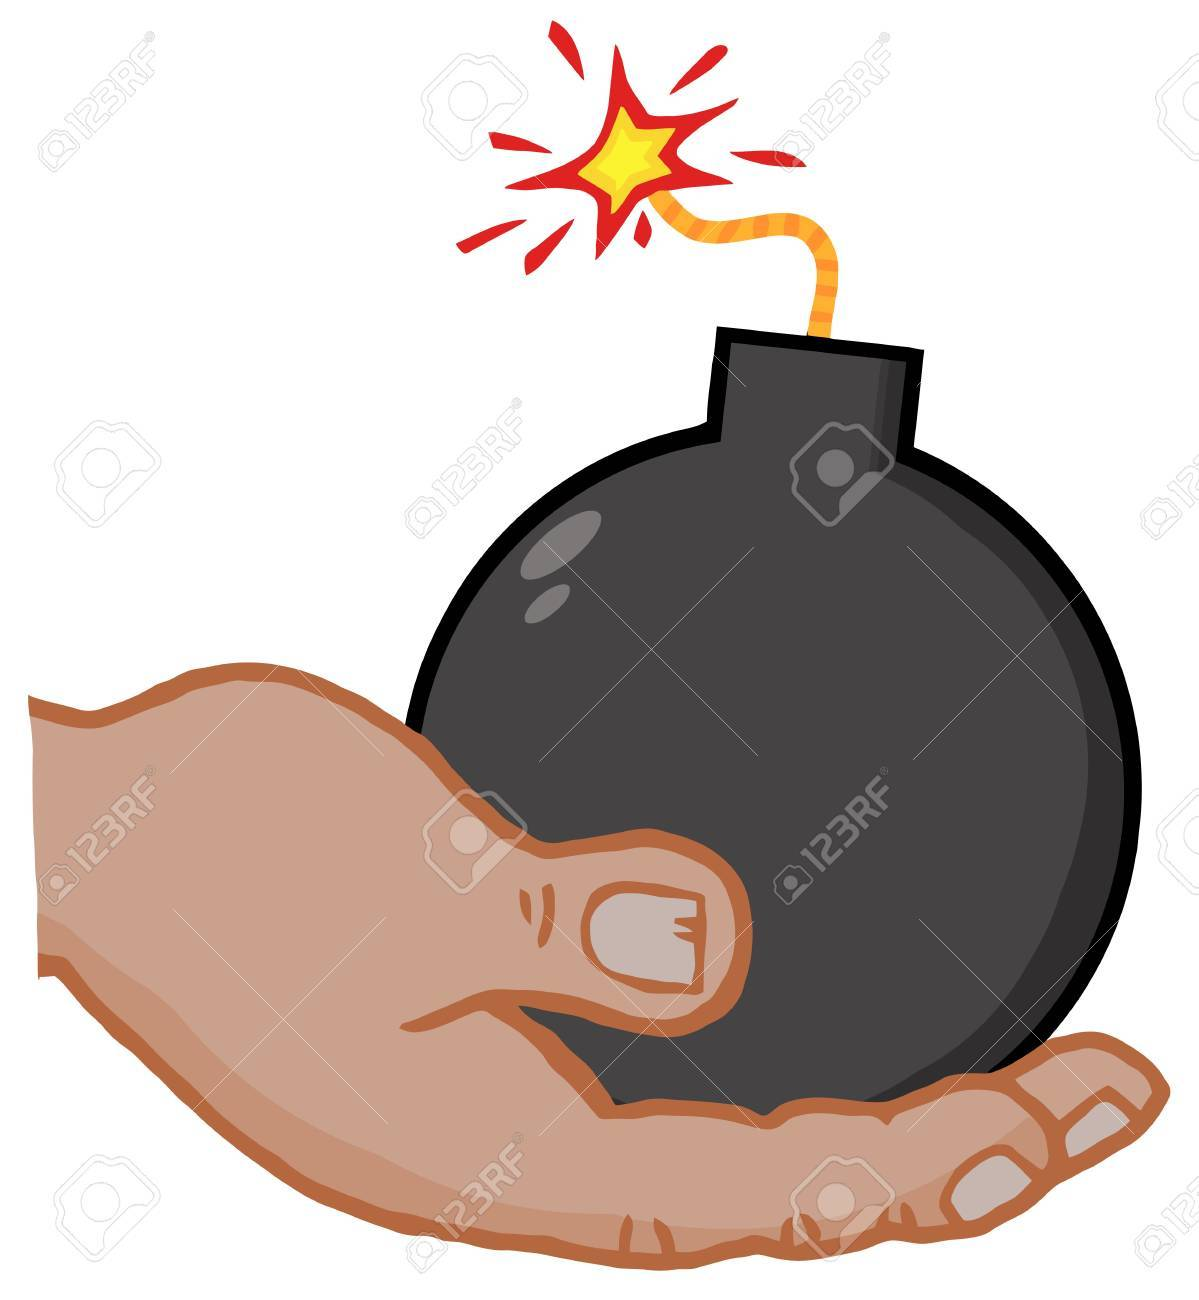 African American Hand Holding Bomb Stock Vector - 12352830